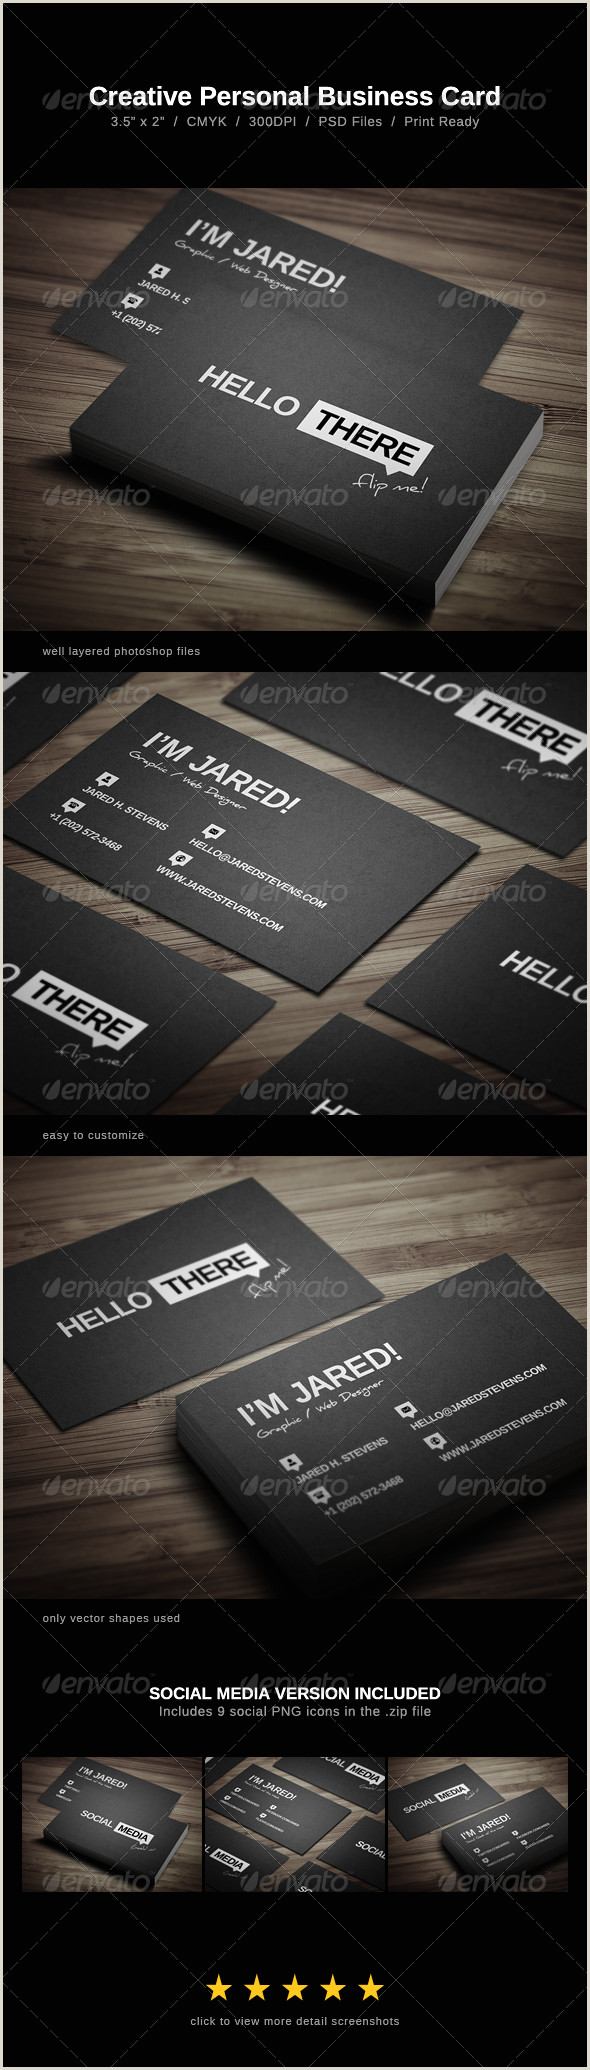 Personal Business Card Template Personal Business Card Templates & Designs From Graphicriver